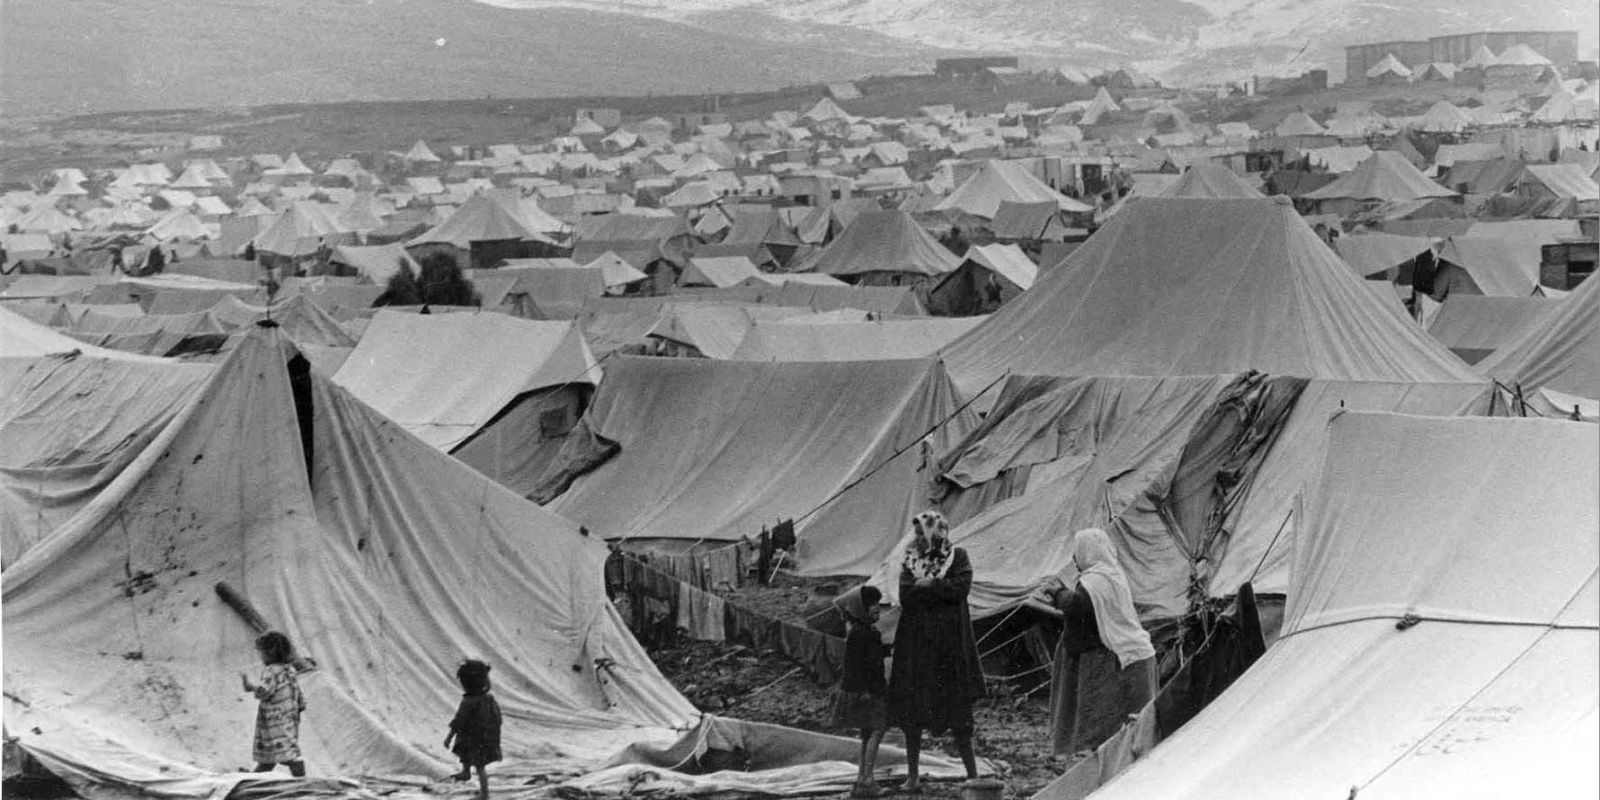 An early refugee camp. Late 1940s, Palestine.